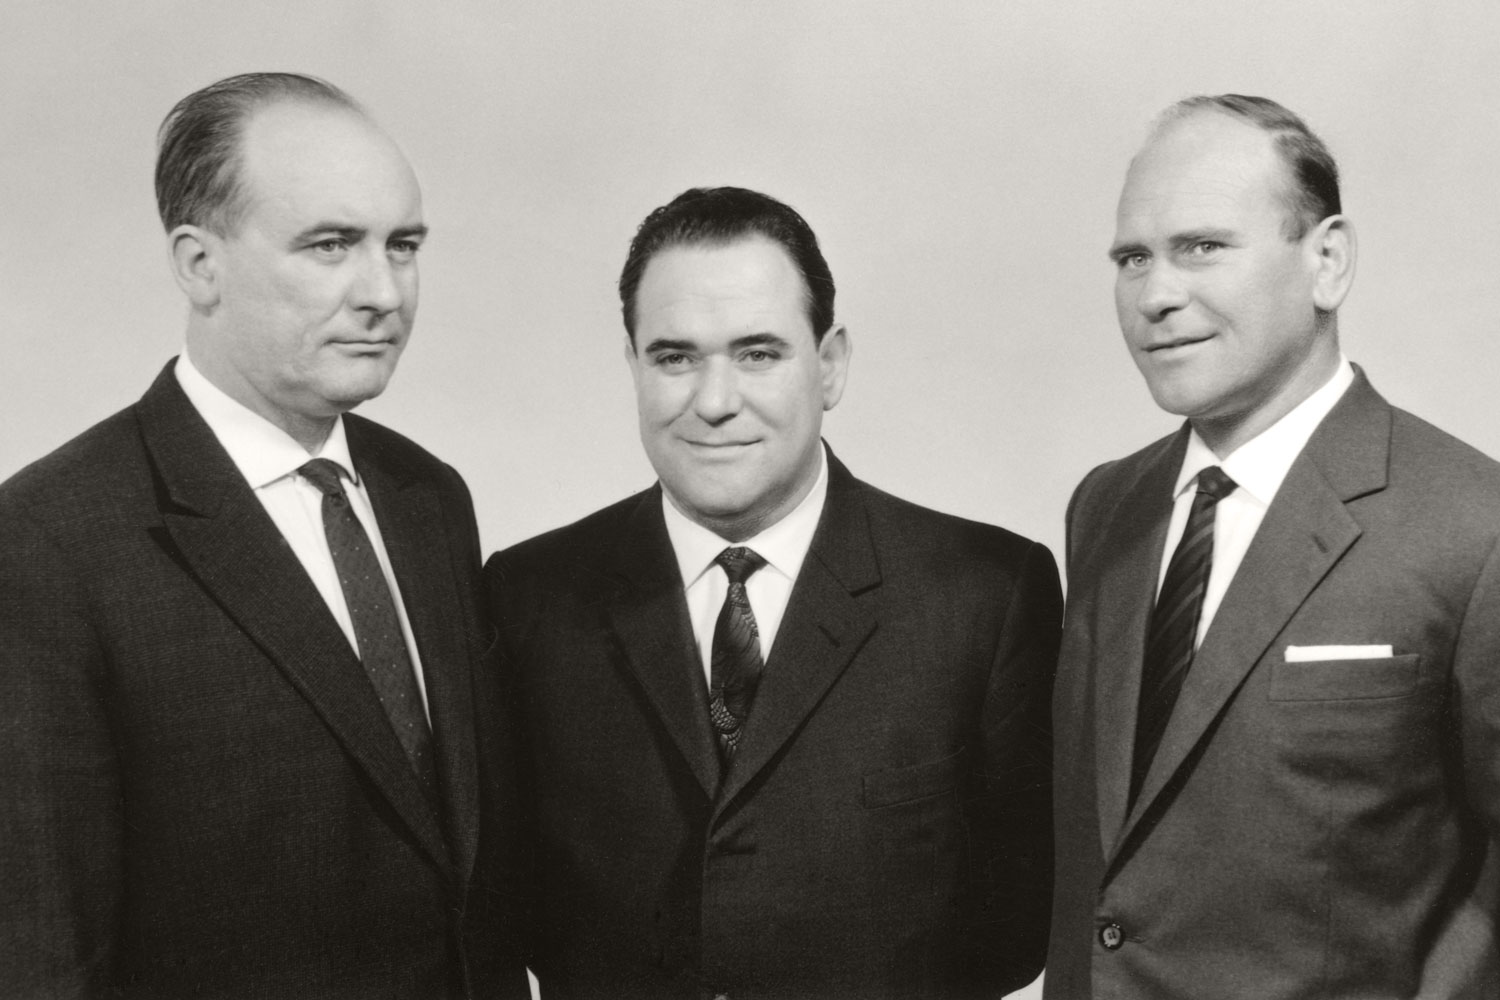 Sociable, thrifty and athletic: Alois, Hans and Heinz Pöttinger.